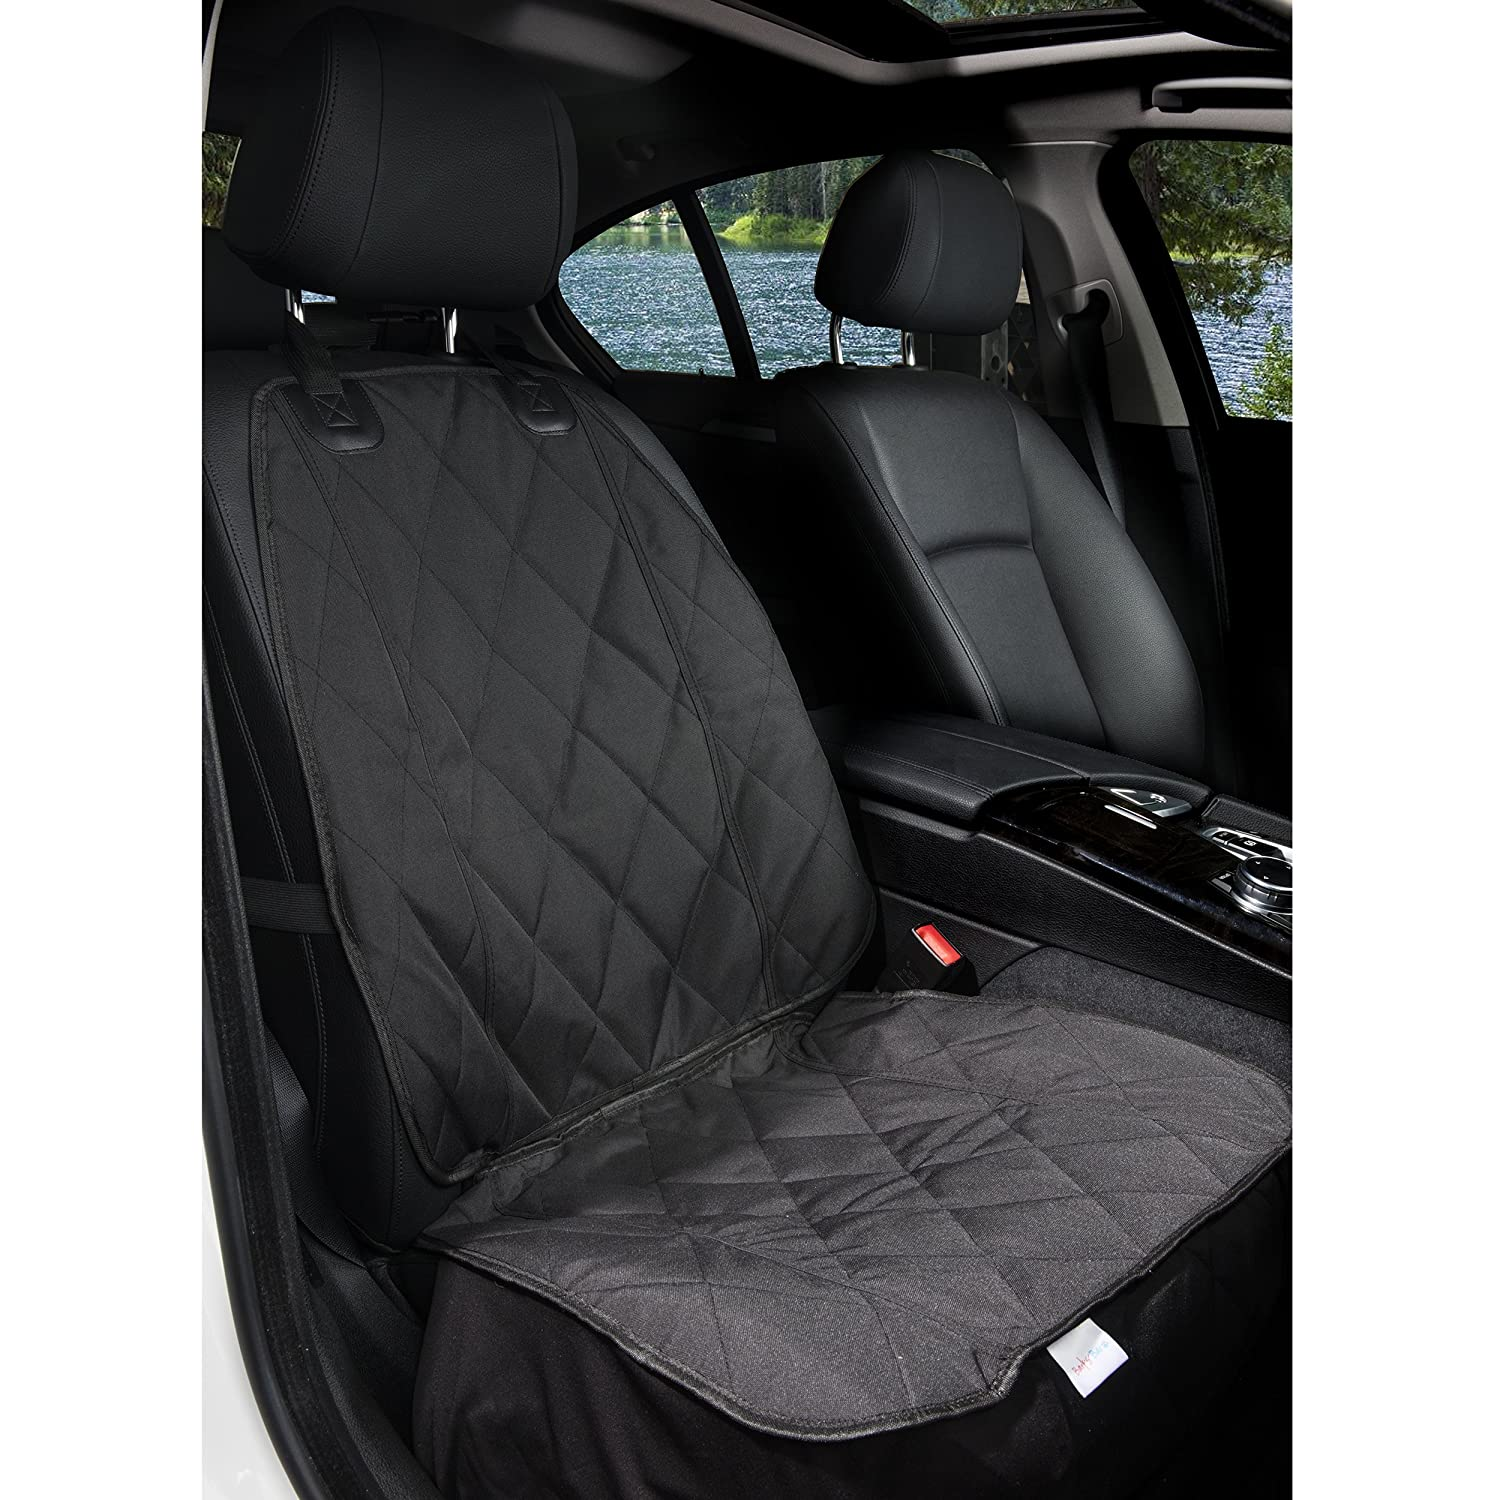 Protective Front Seat Cover for Pets